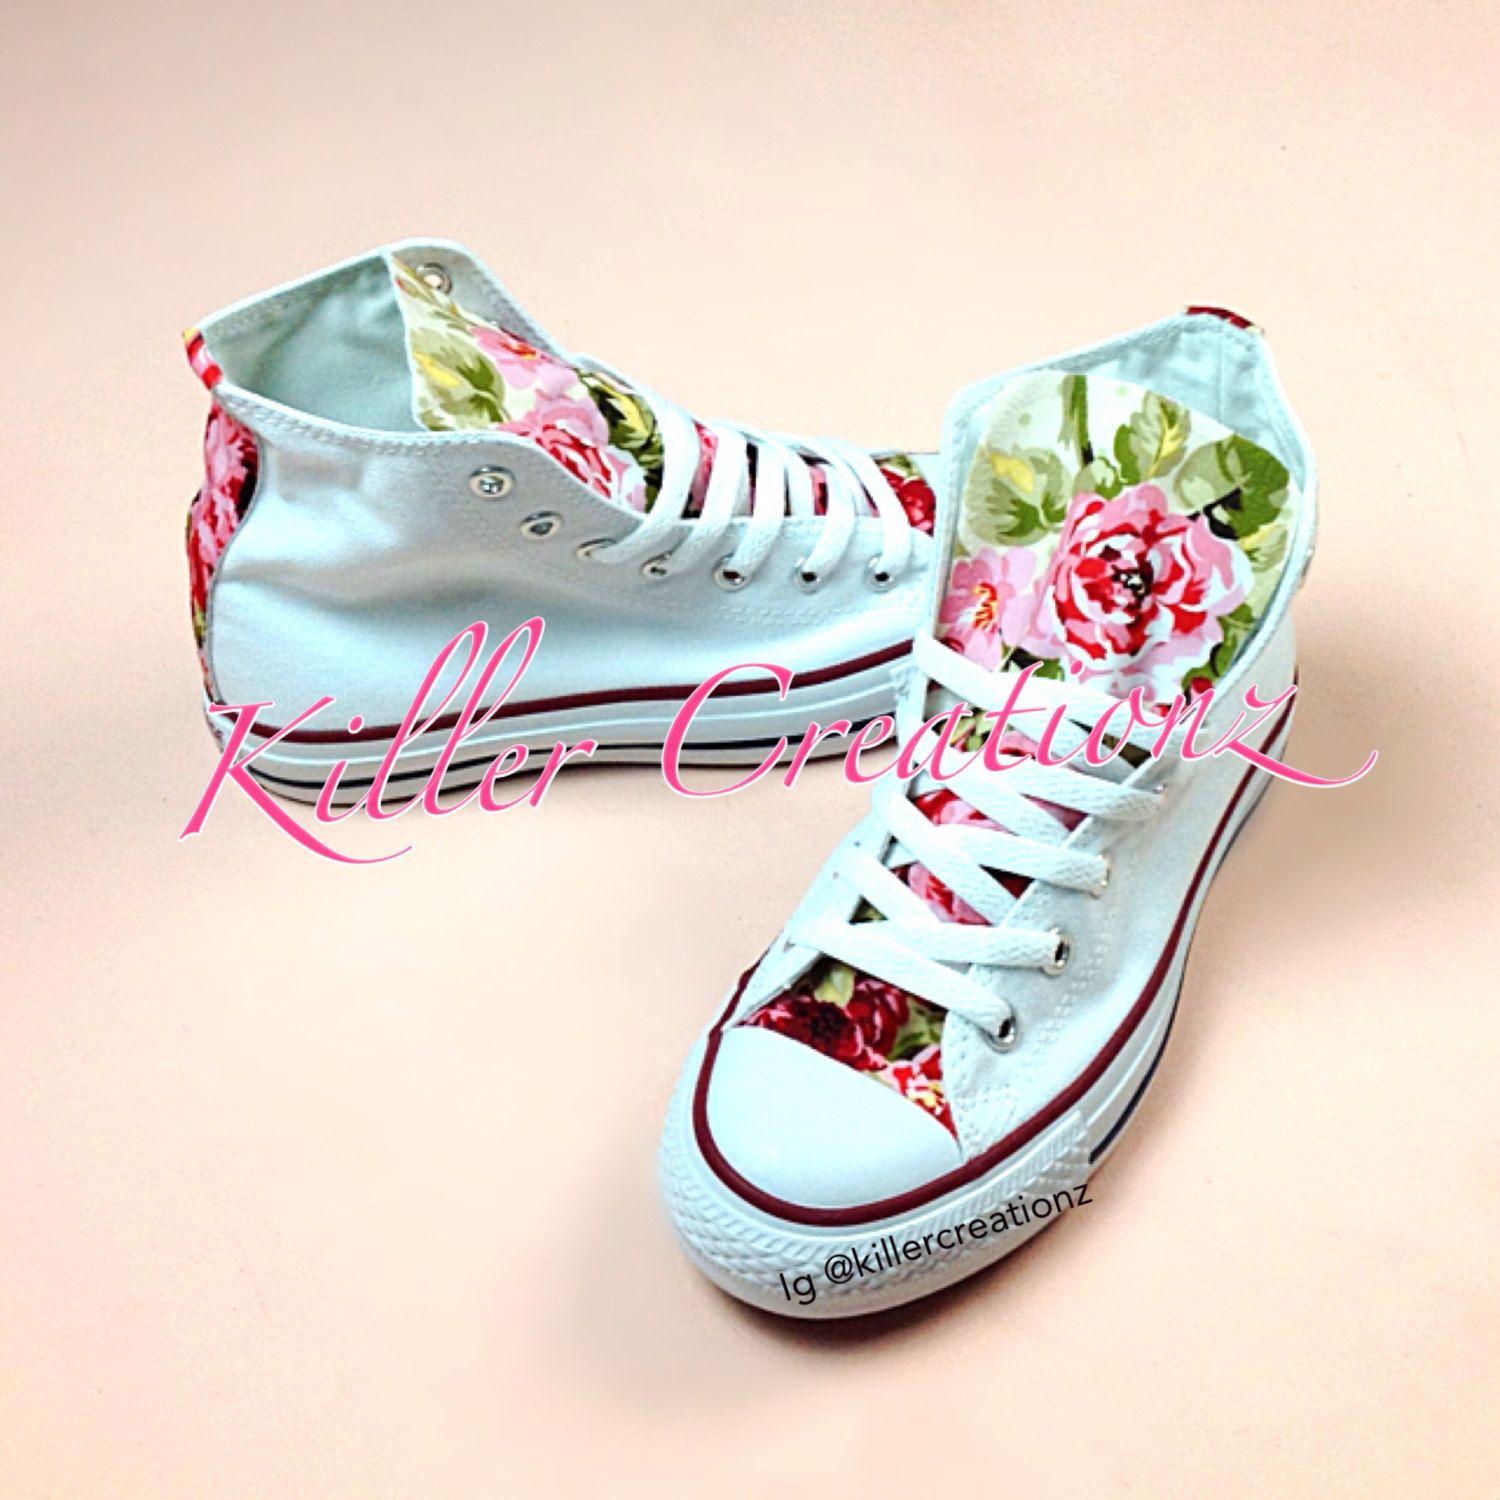 5618b9fdaf36 Custom+Floral+High+Top+Converse+made+to+order+by+KillerCreationz